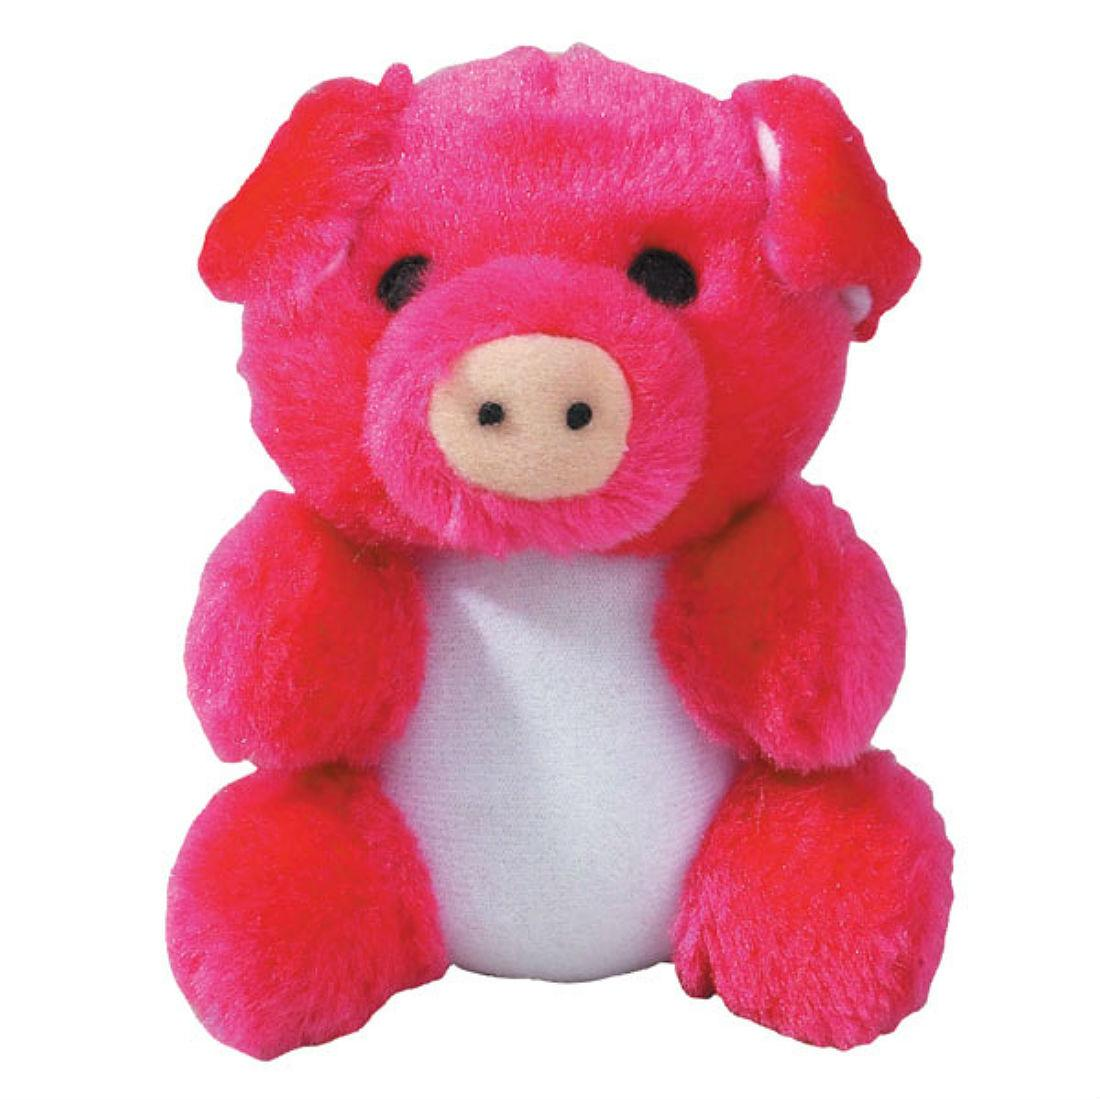 Zanies Kutie Pies Dog Toy - Poink Pig